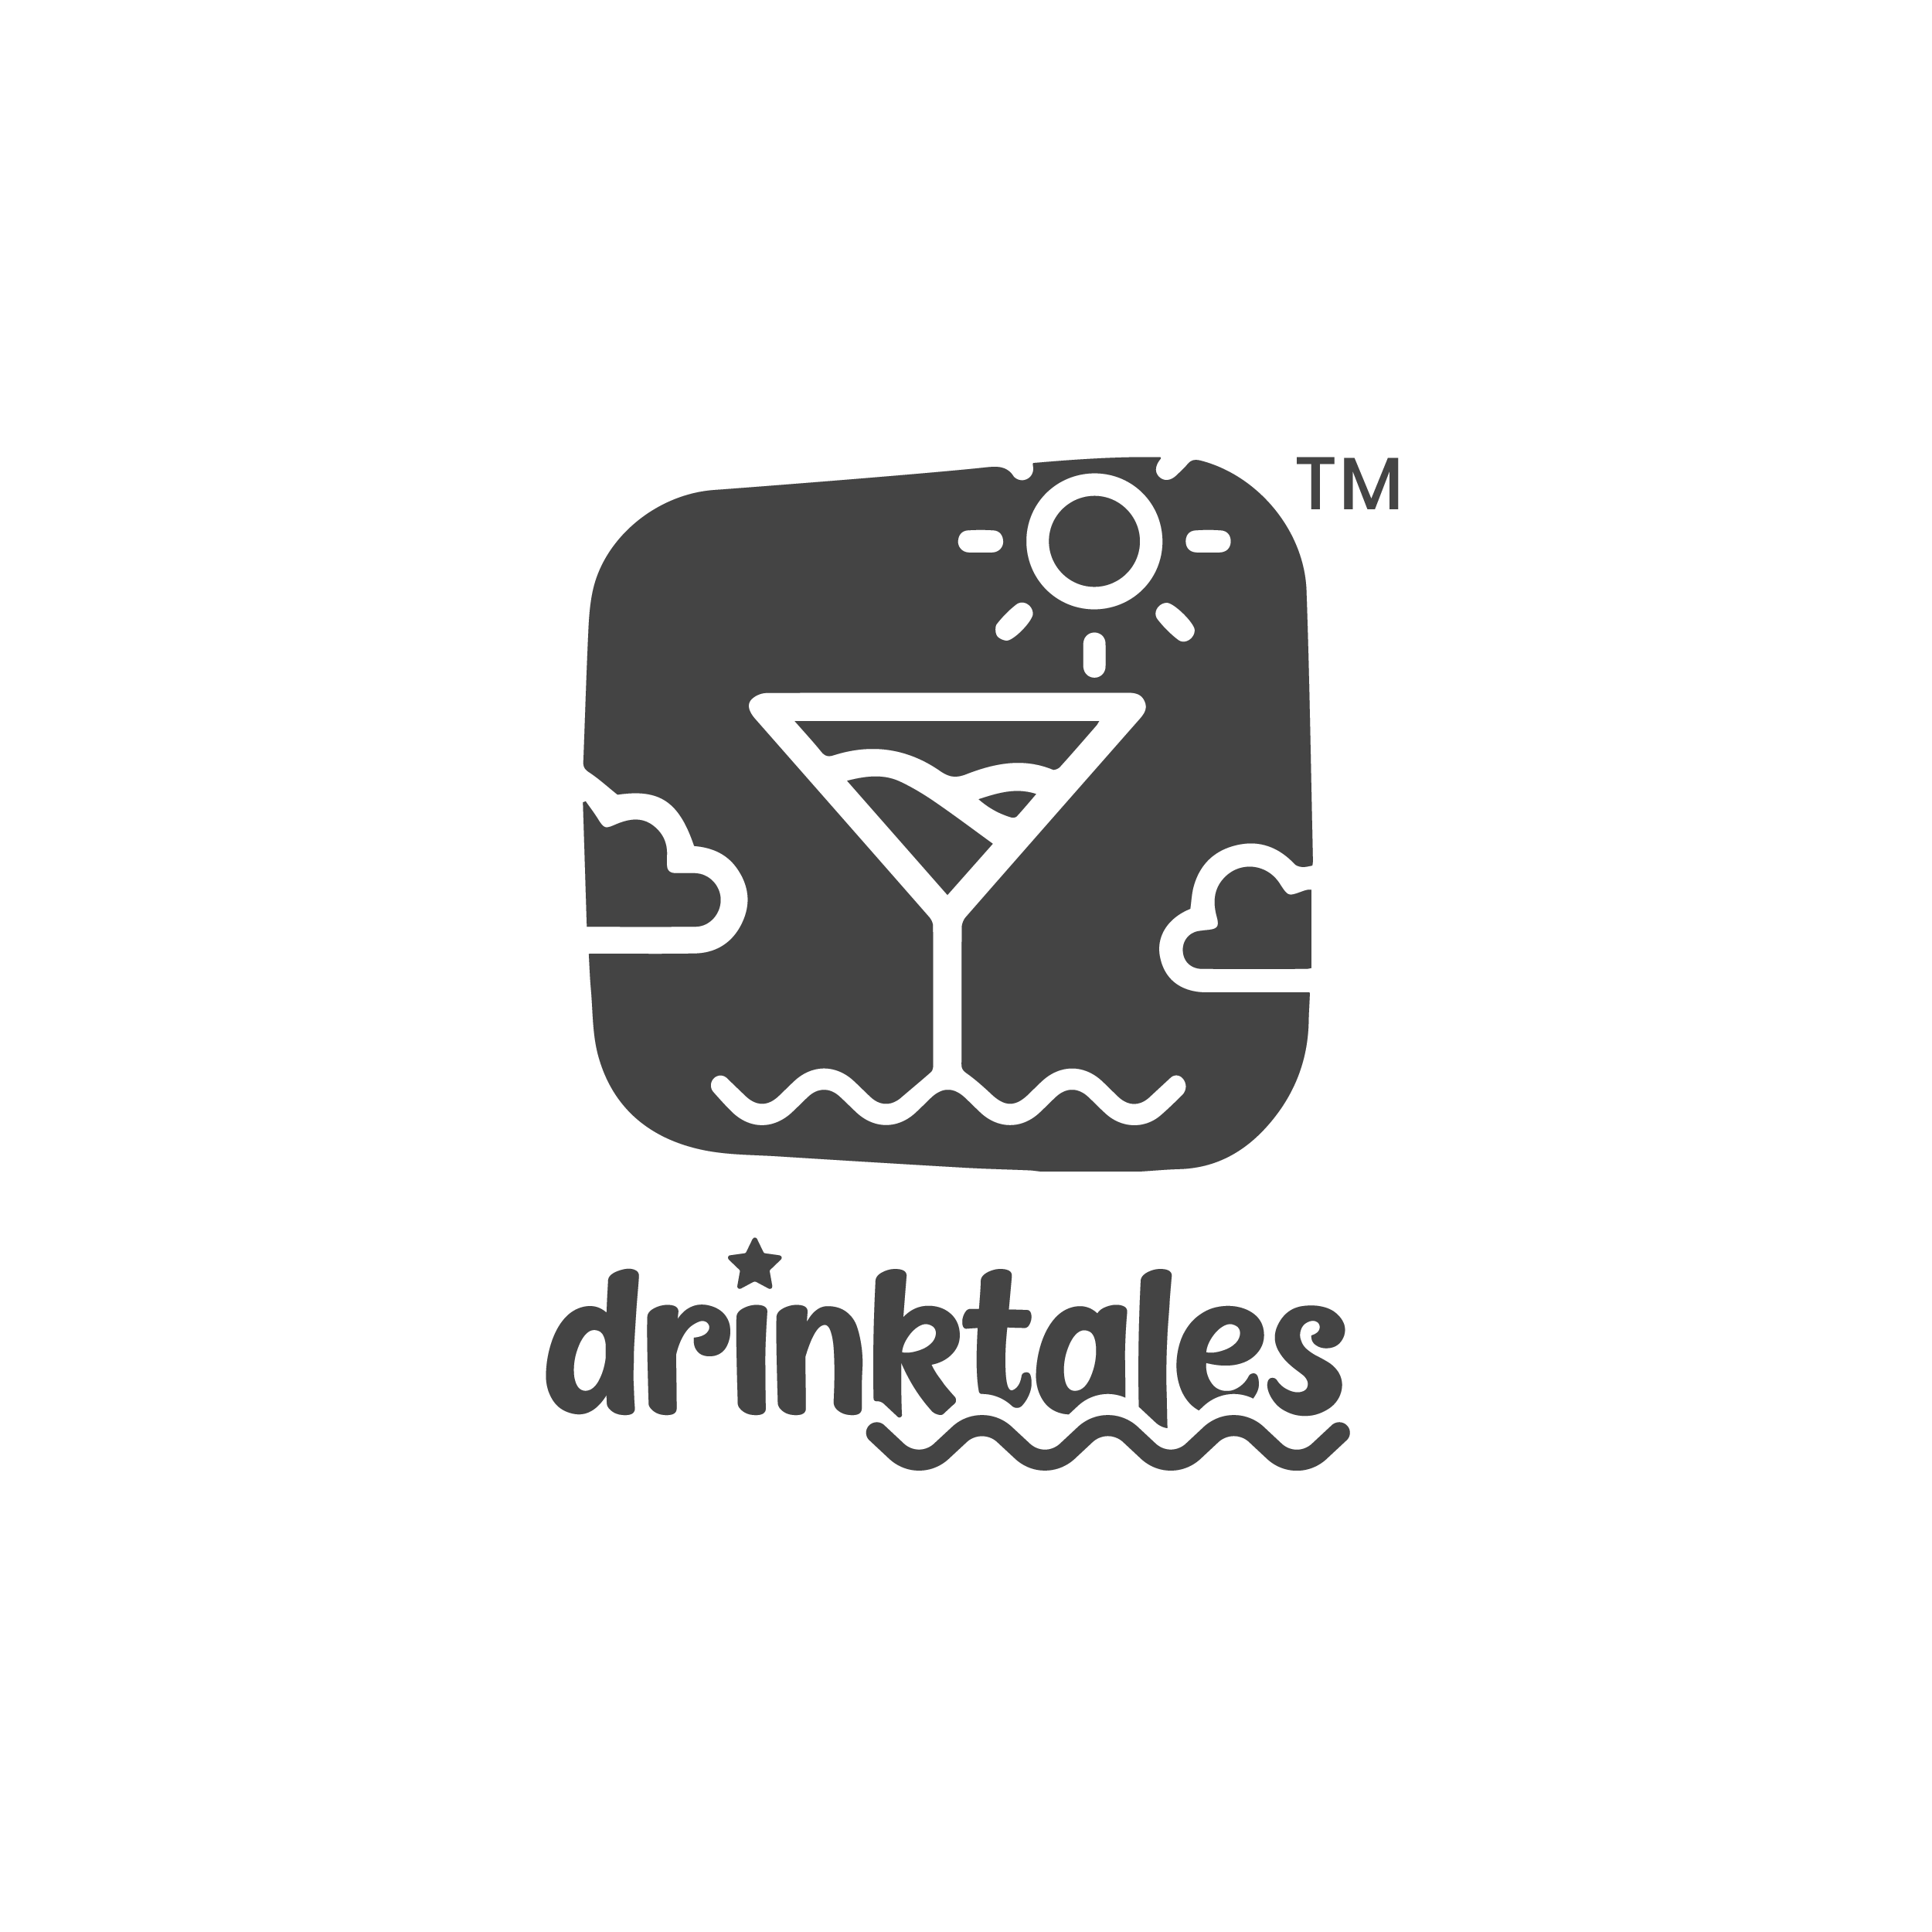 Drinktales Products LLP